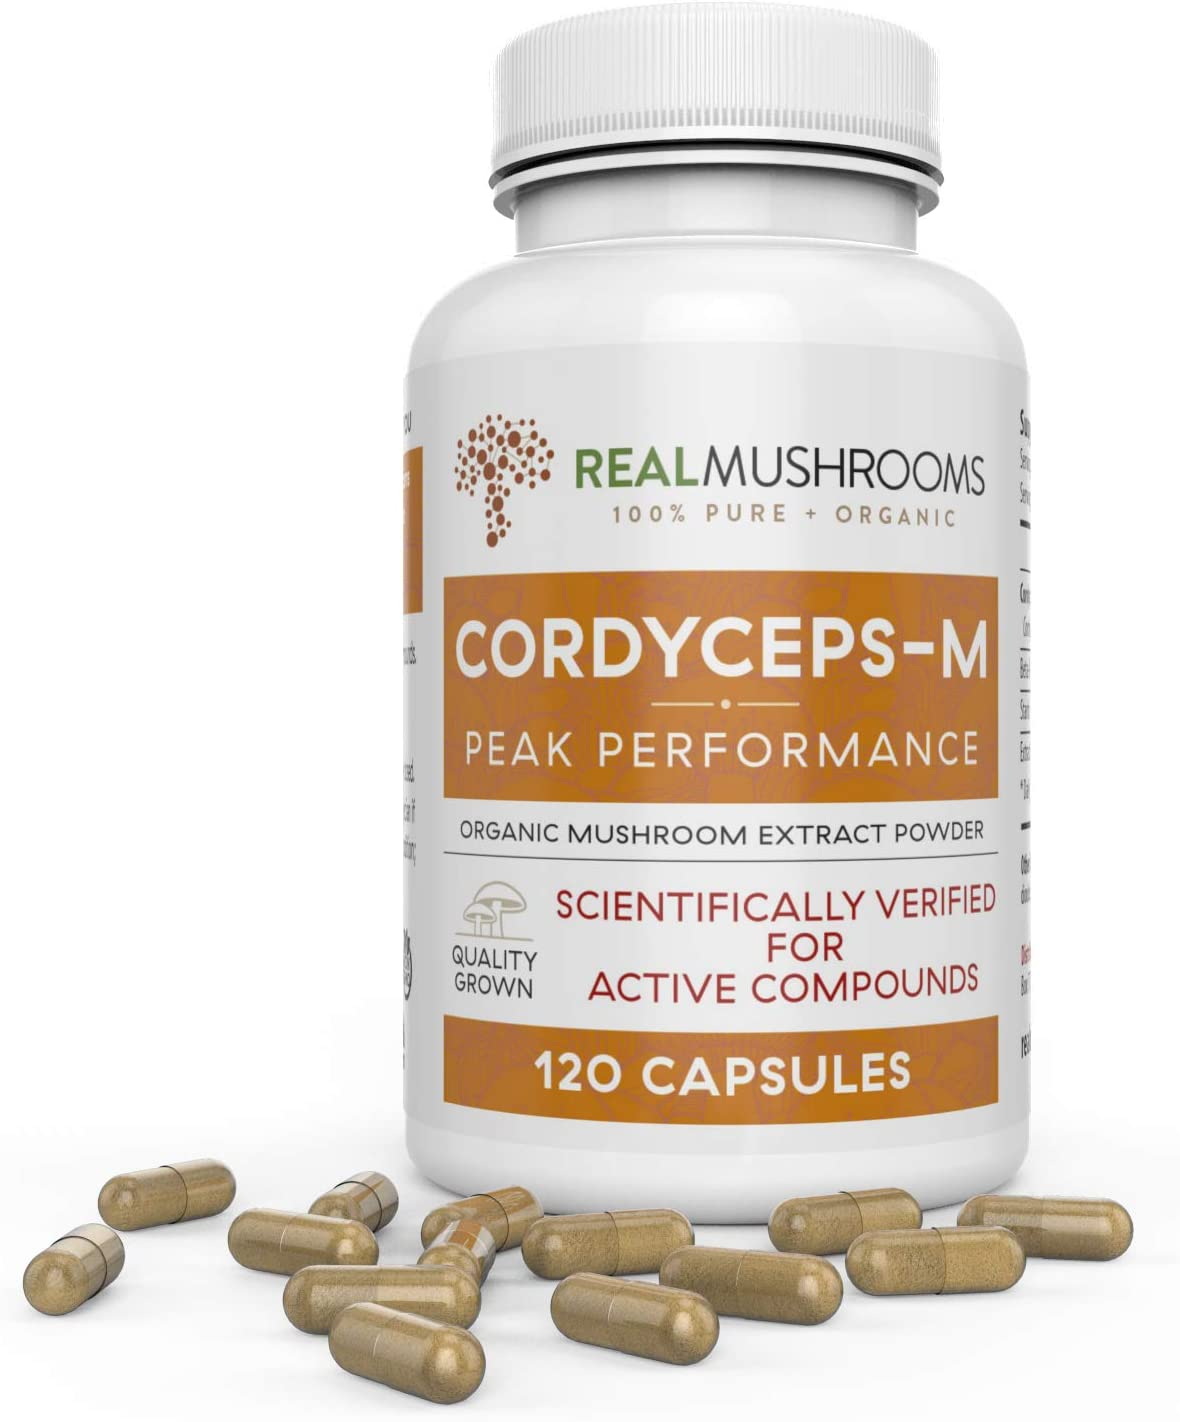 Organic Cordyceps Mushroom Capsules by Real Mushrooms – 120 Capsules of Extract Powder